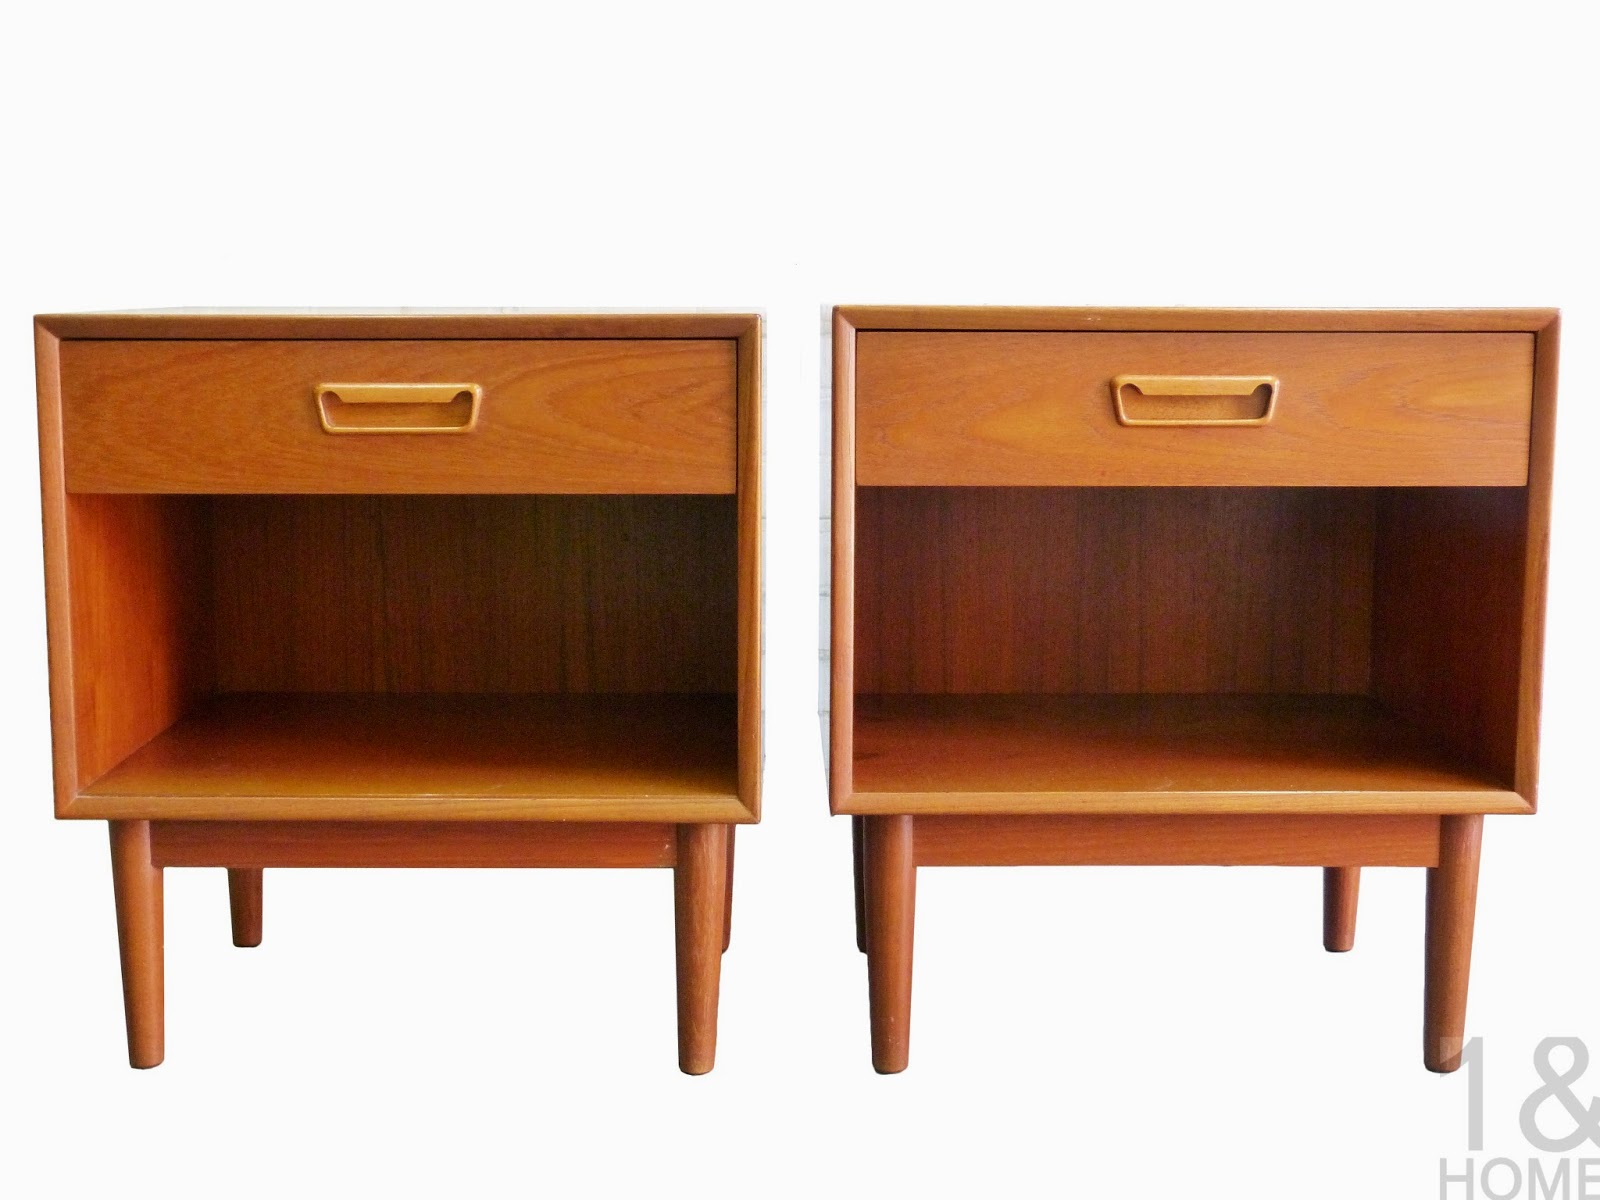 Westnofa Danish Modern Mid-Century pair of Nightstands